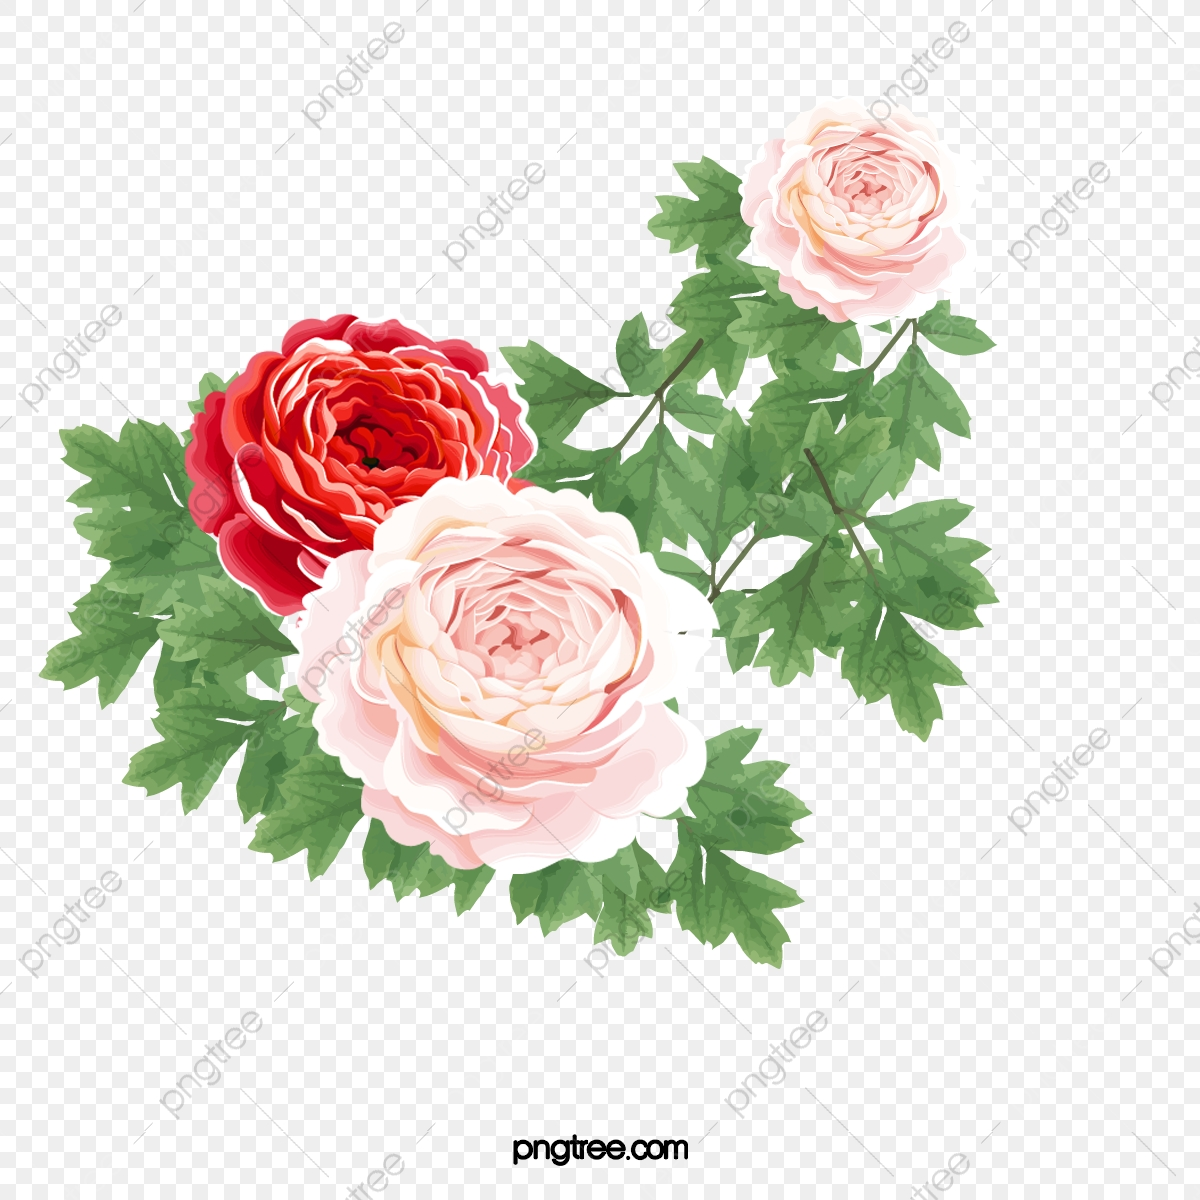 Minimalist Aesthetic Flowers Beautiful Simple Flowers Png Transparent Clipart Image And Psd File For Free Download